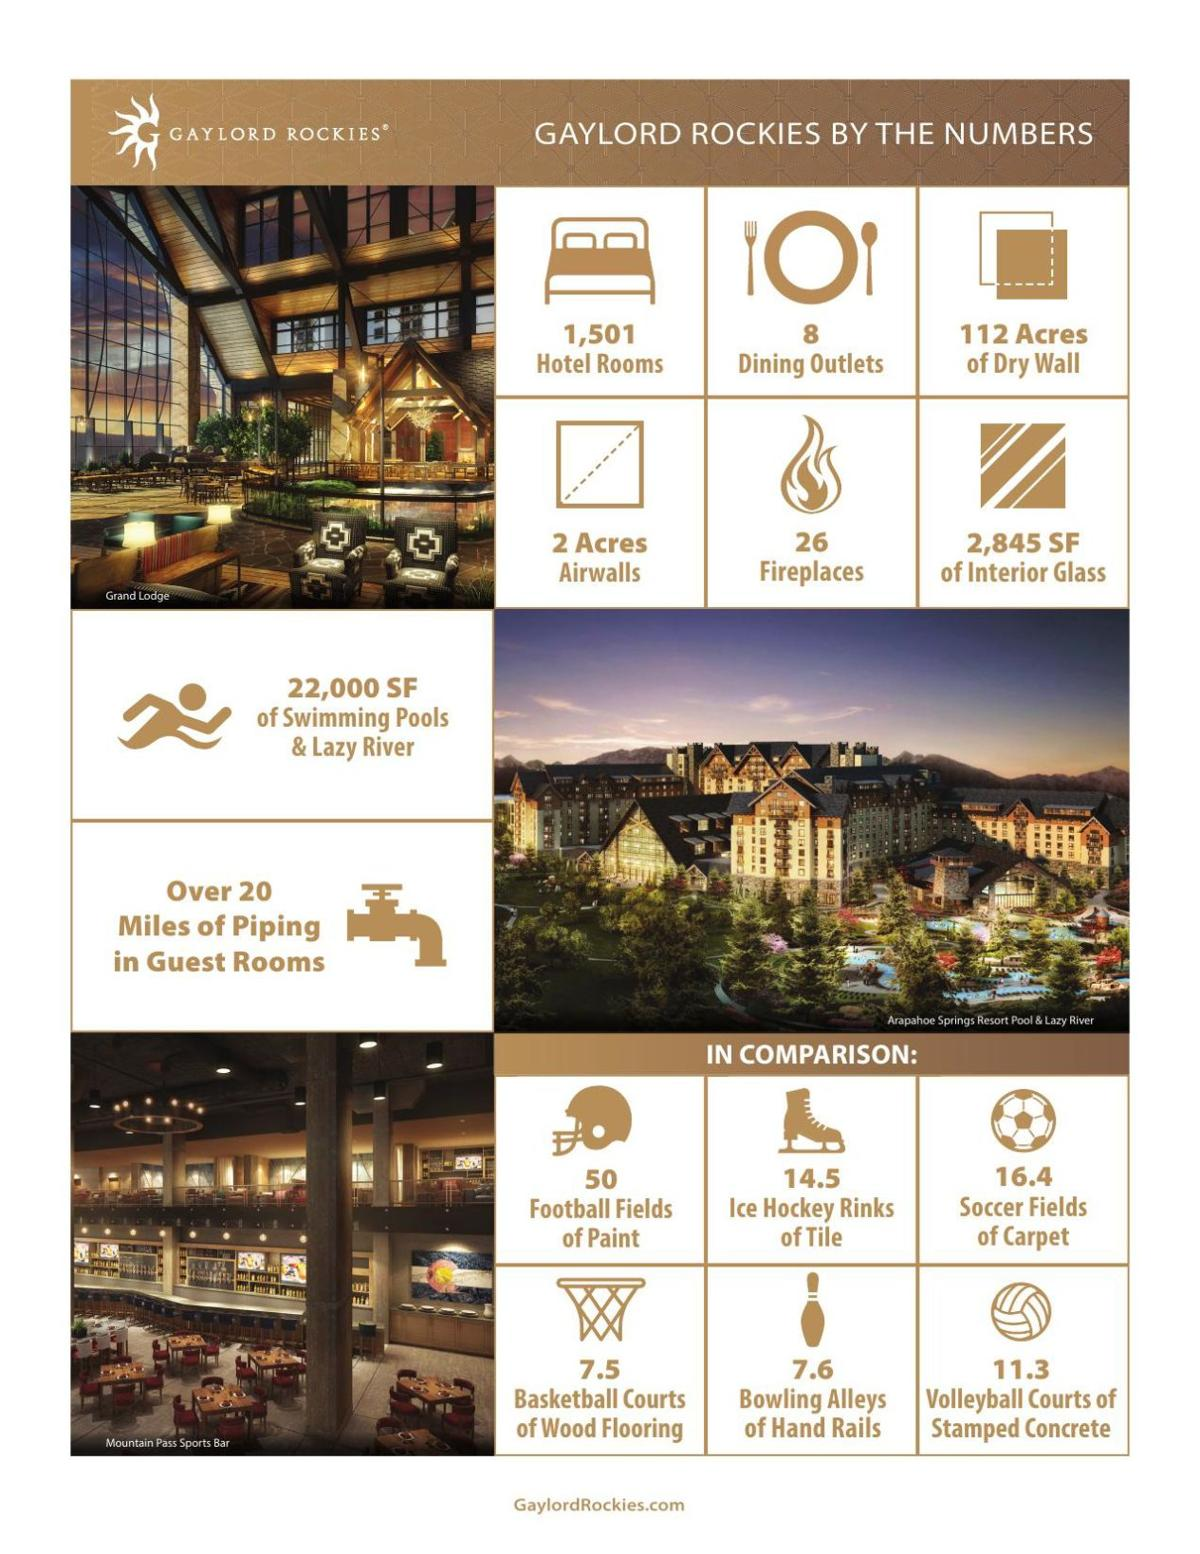 Gaylord Rockies Infographic